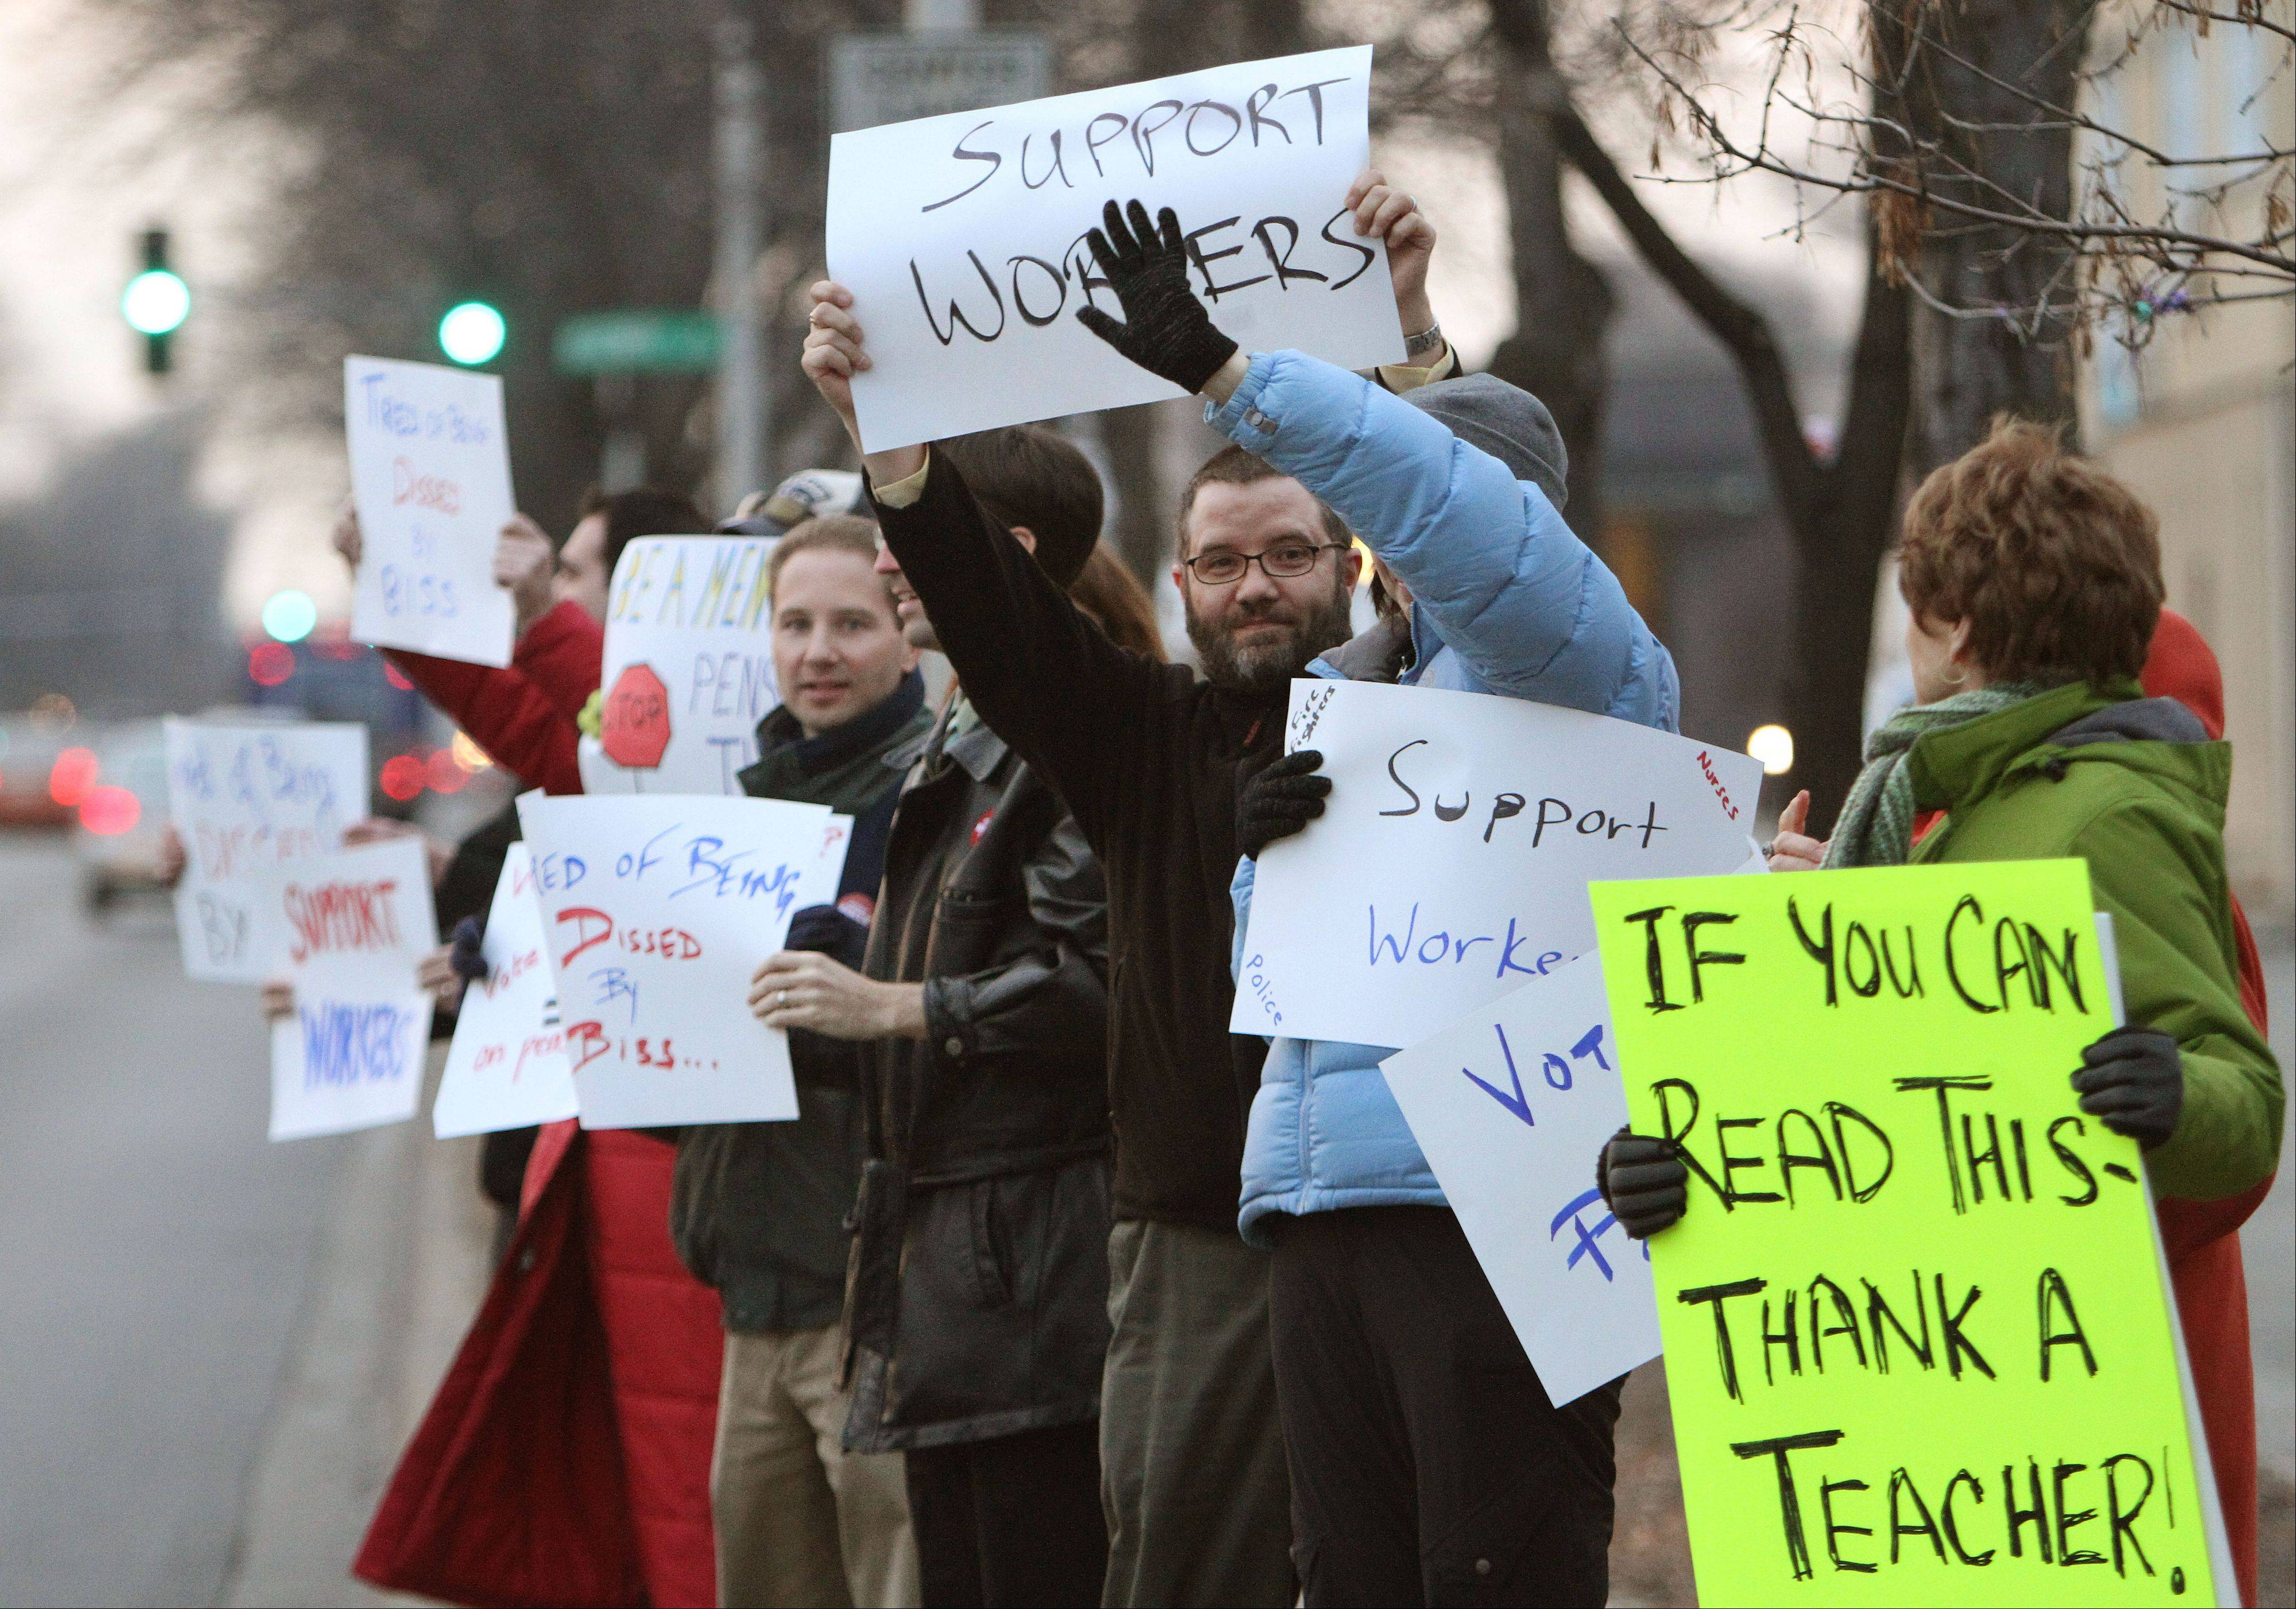 About 40 teachers and retirees protested against proposed state employee pension cuts outside the office of state Sen. Daniel Biss in Skokie.